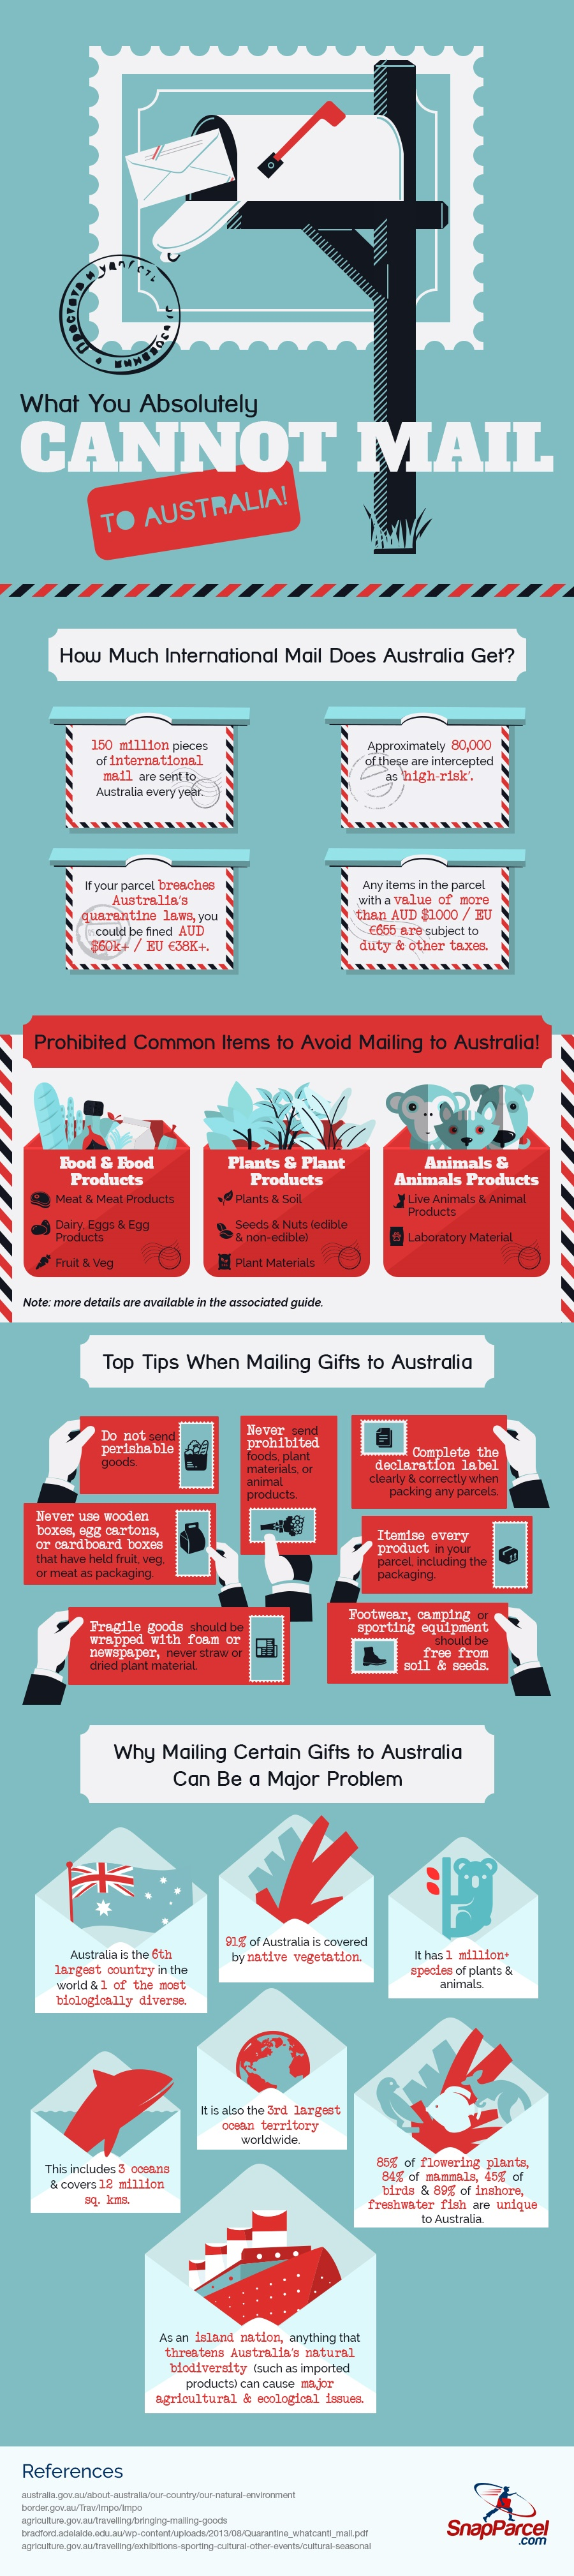 What You Absolutely Cannot Mail to Australia